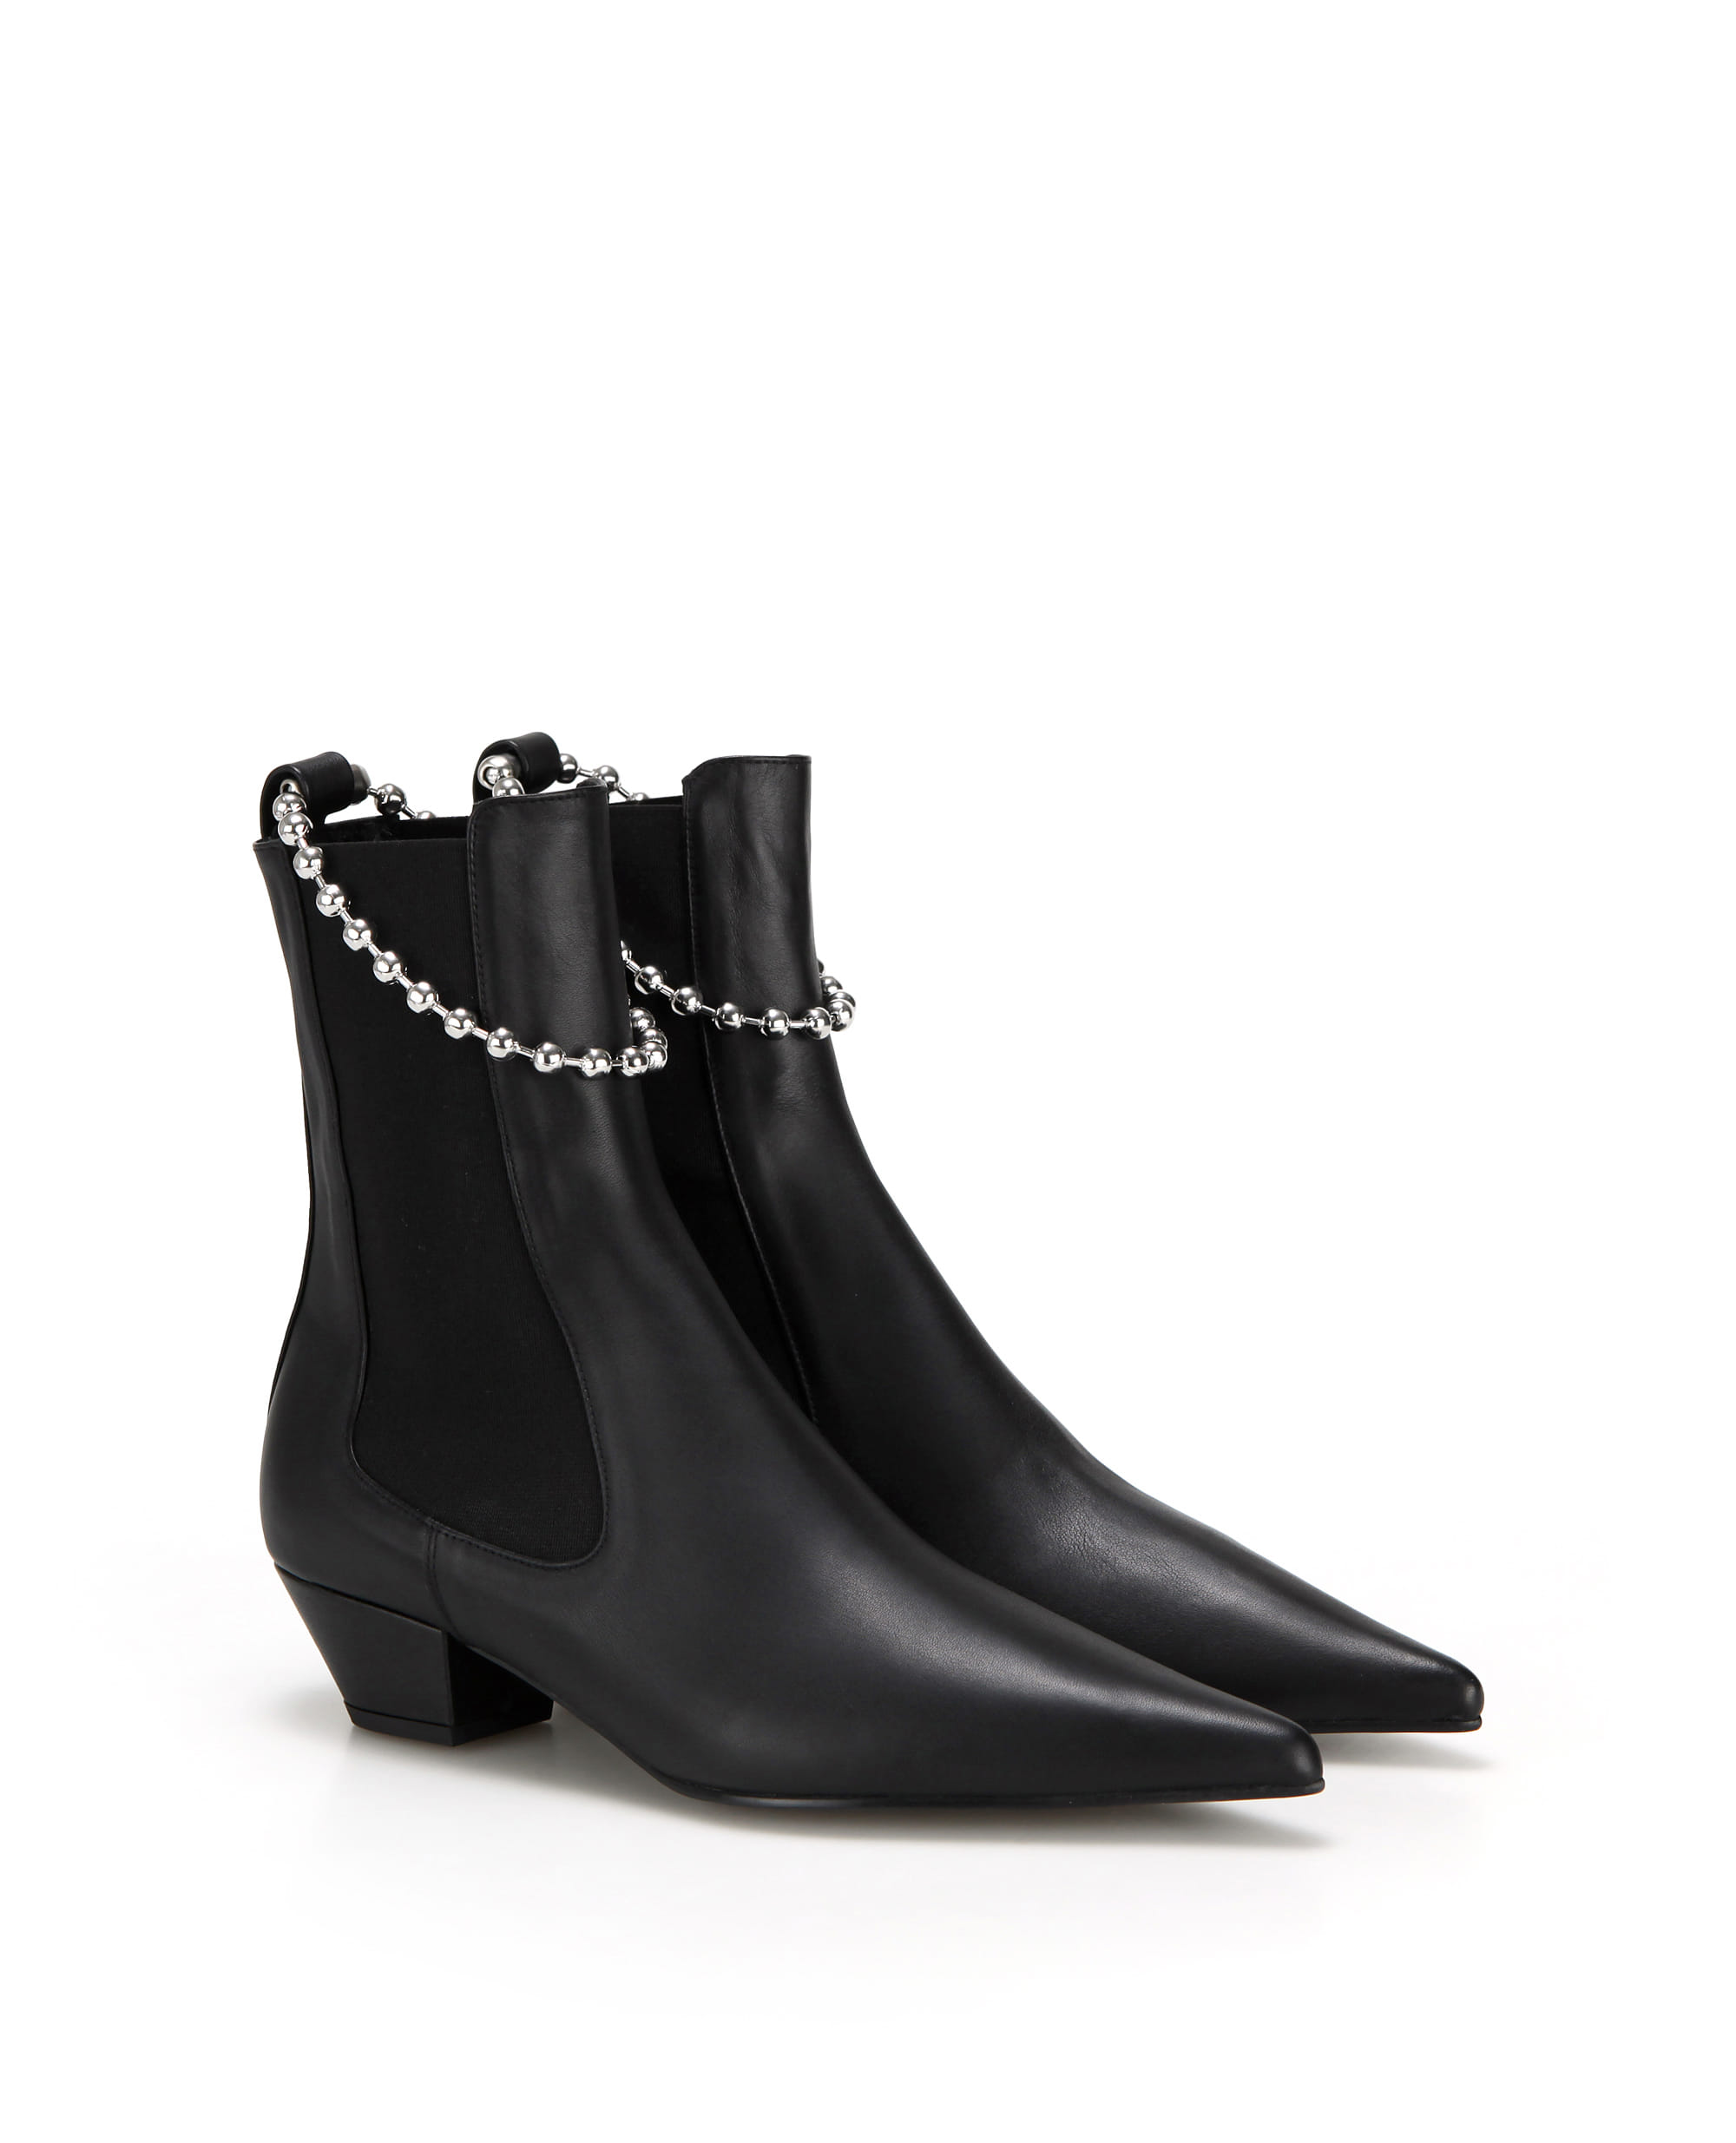 flatapartment, flat apartment, boots, Chelsea boots, chelseaboots, ball chain, shoes, Seoul fashion, k fashion, flat apartment shoes